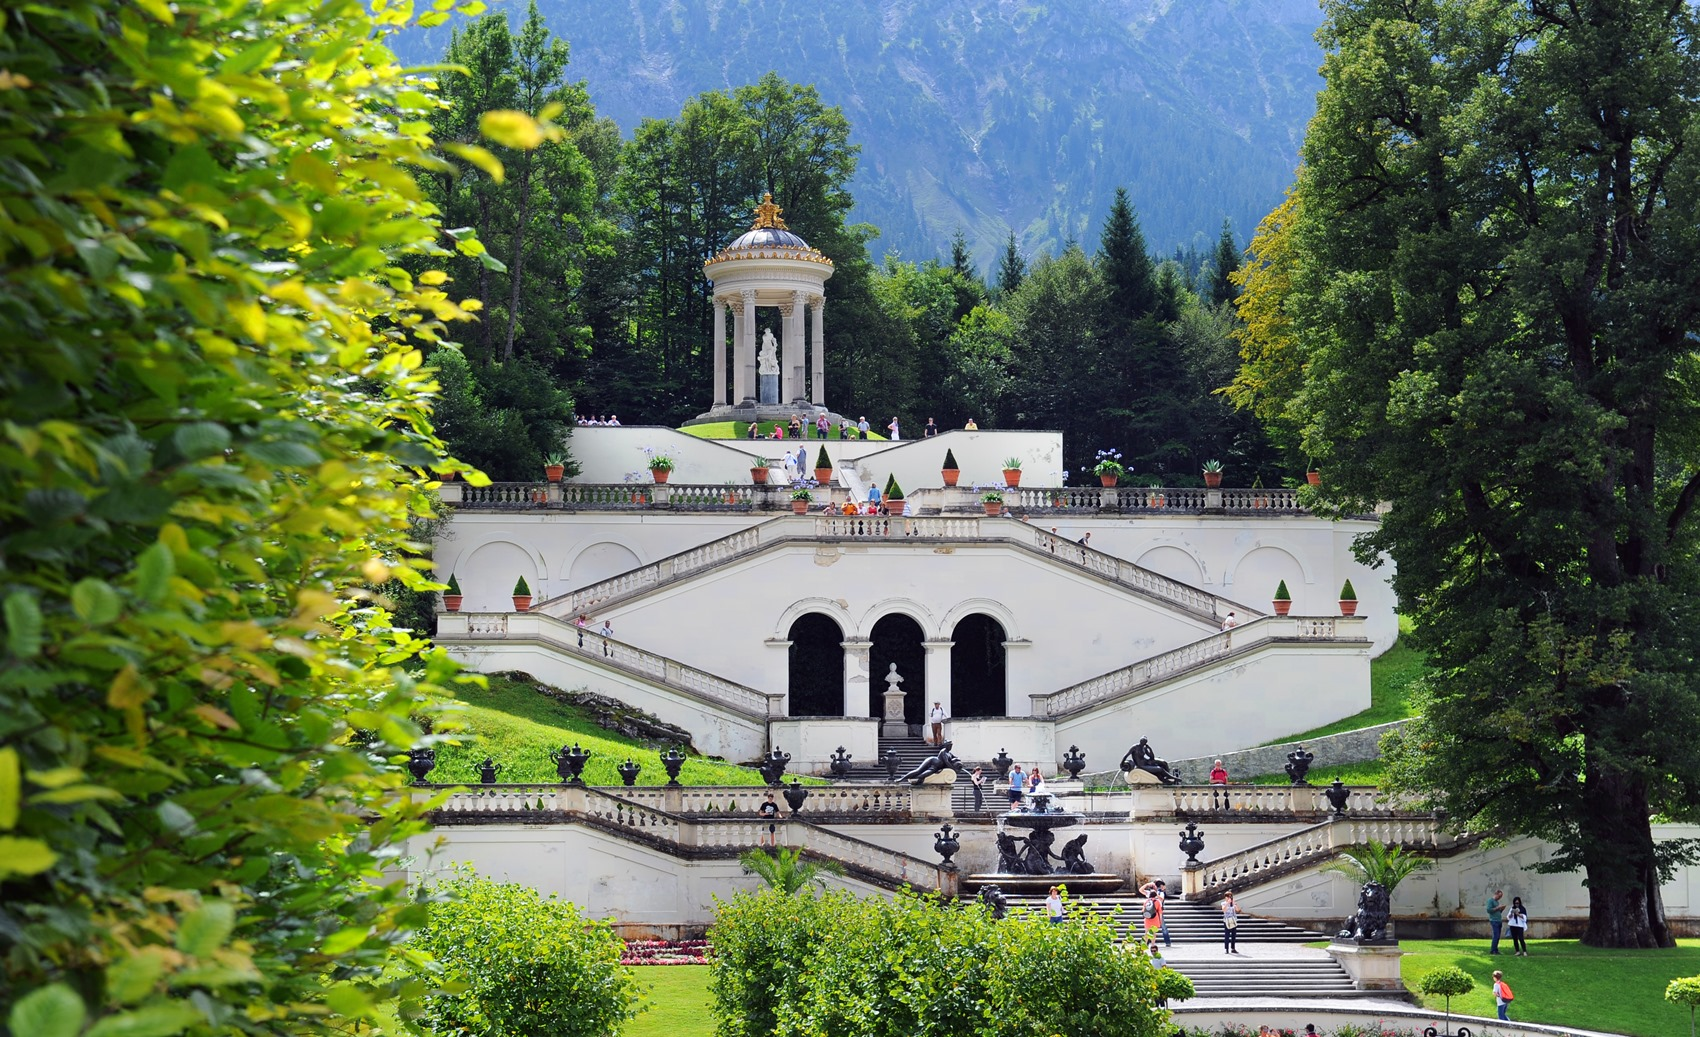 Linderhof Palace and garden in Bavaria, Germany